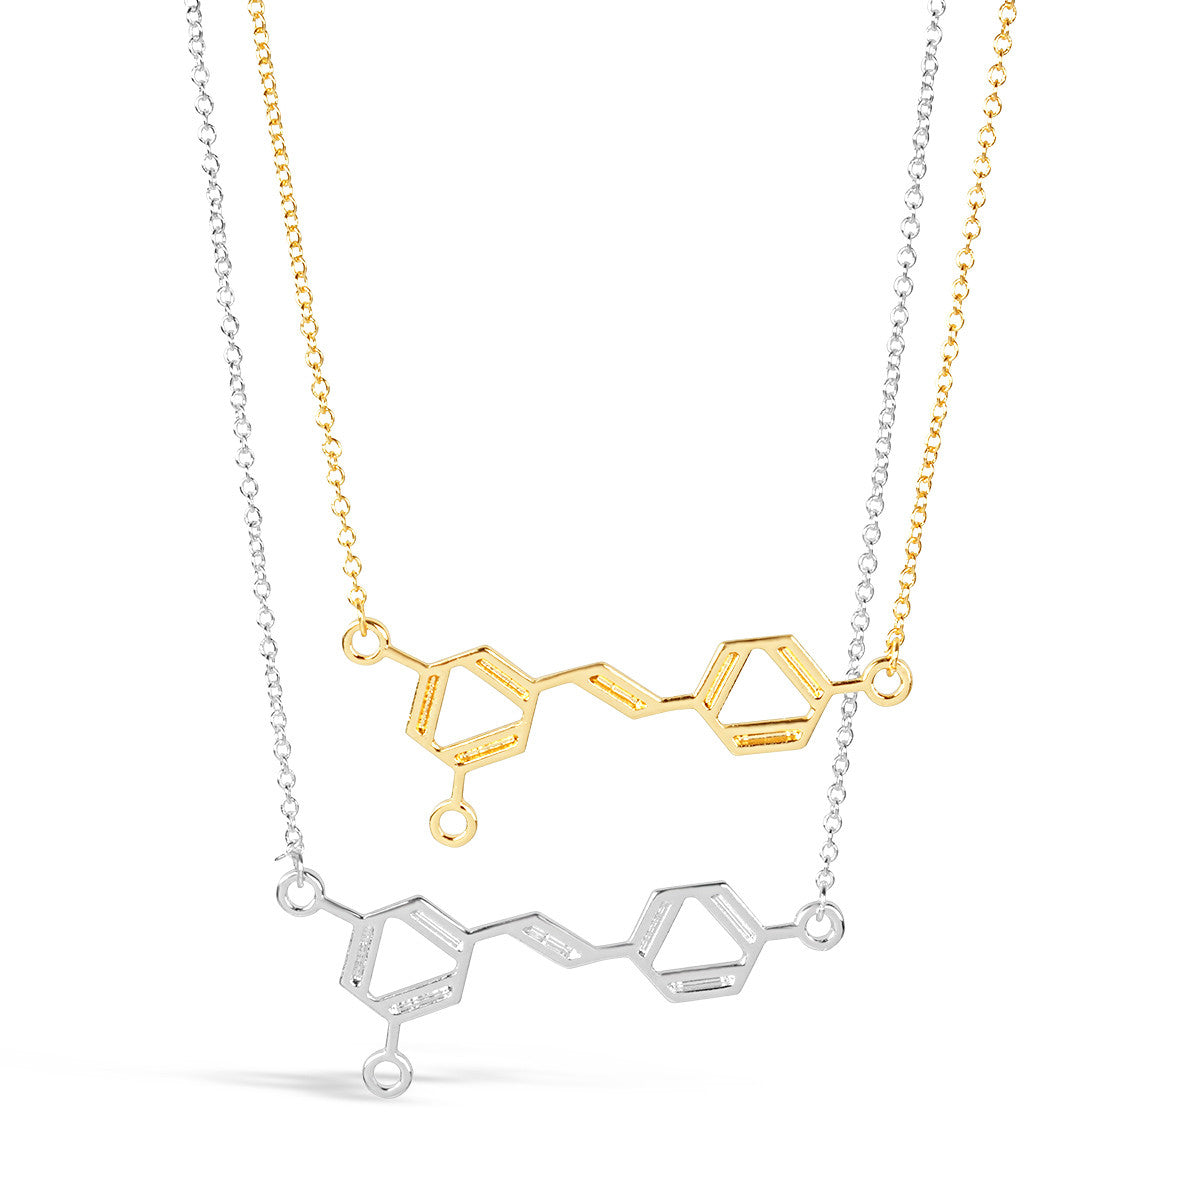 science jewelry dna products necklace grande horizontal pendant horizontaldnapendant